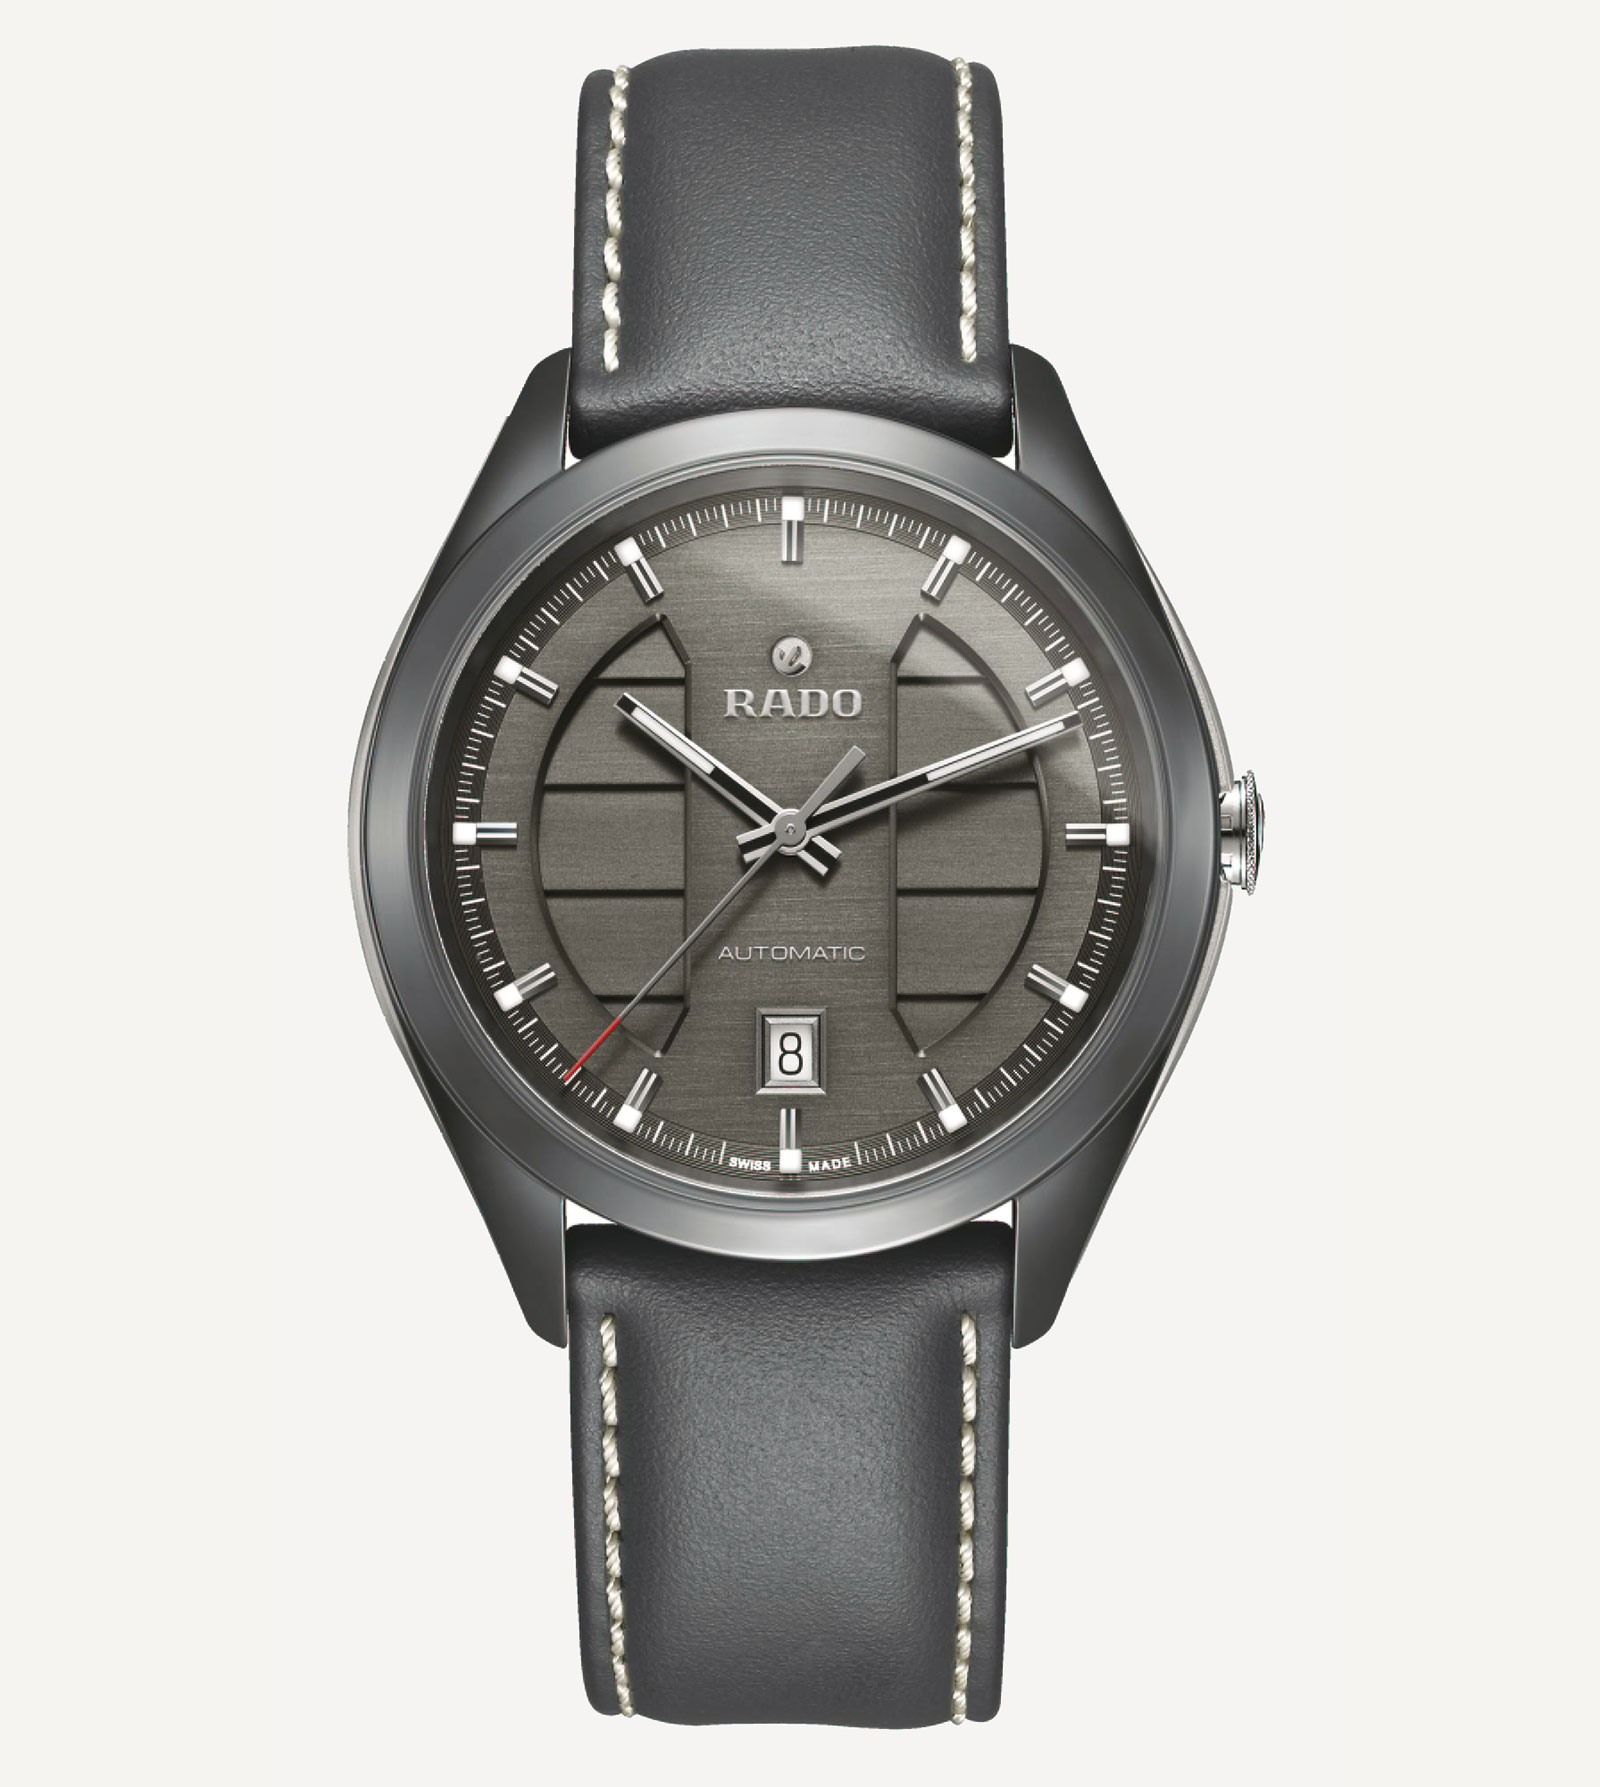 rado-hyperchrome-ultra-light-deep-grey-3